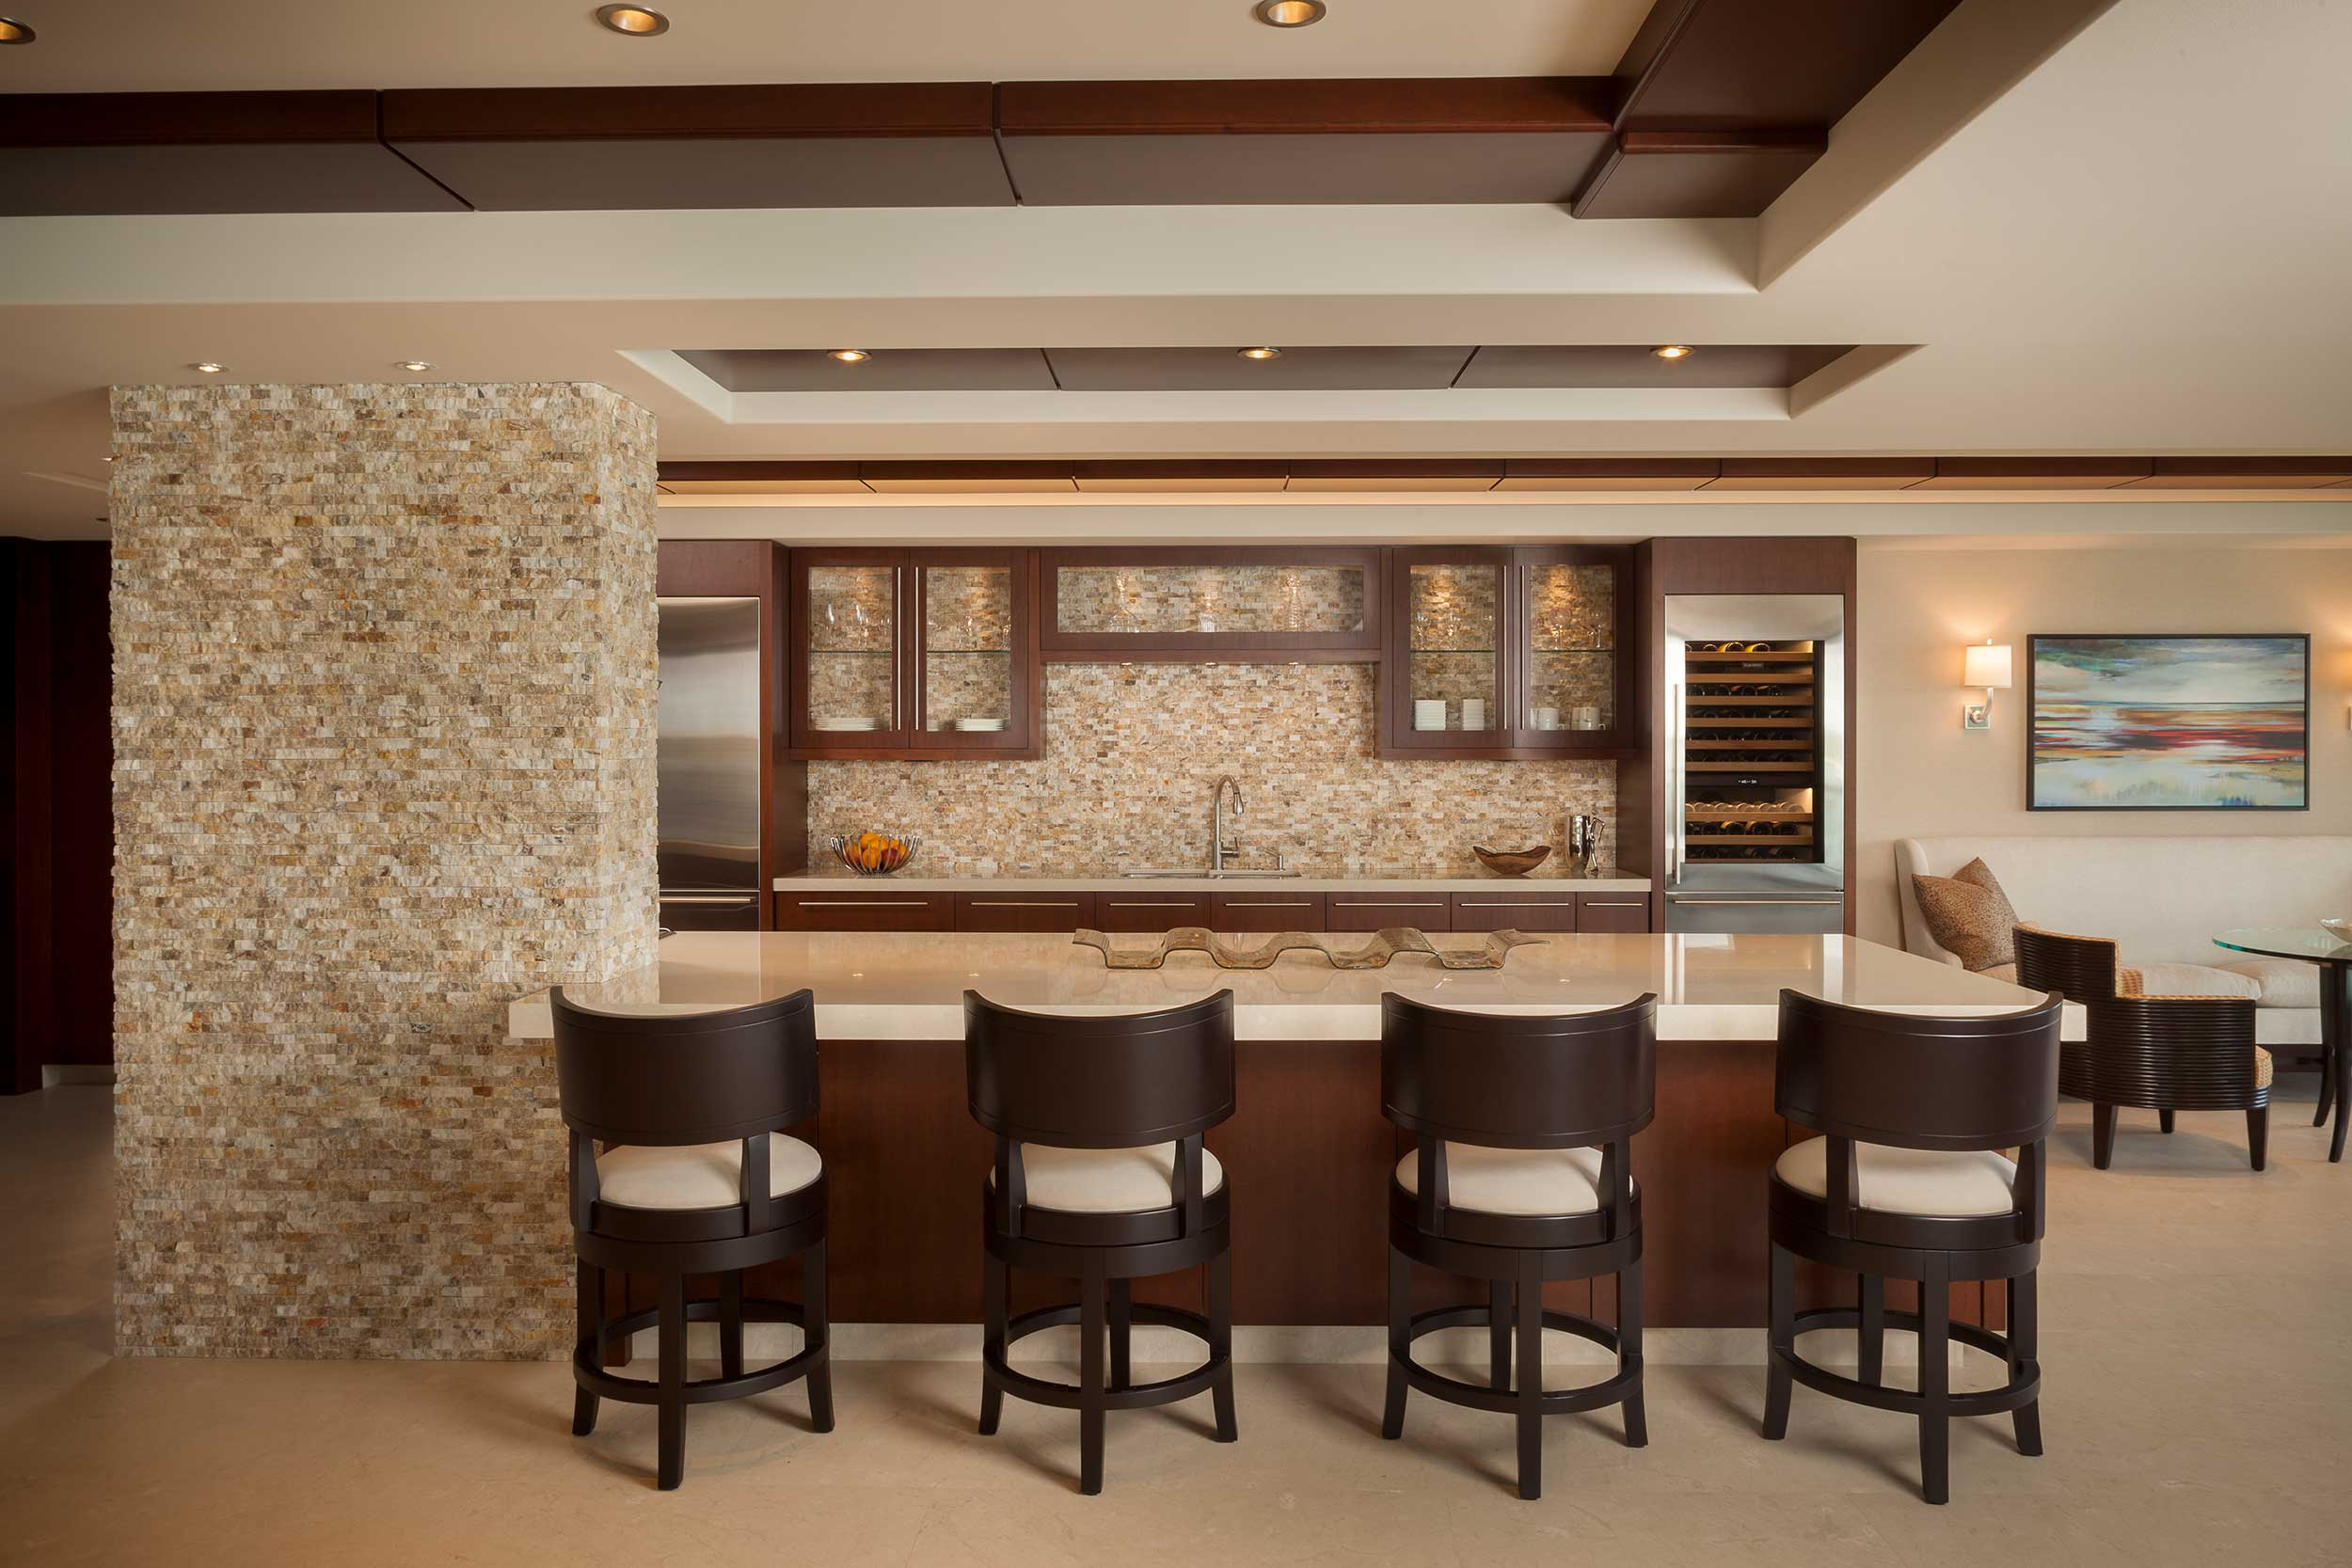 Kitchen with Atmospheric Interior Design Project,Palm Beach, FL